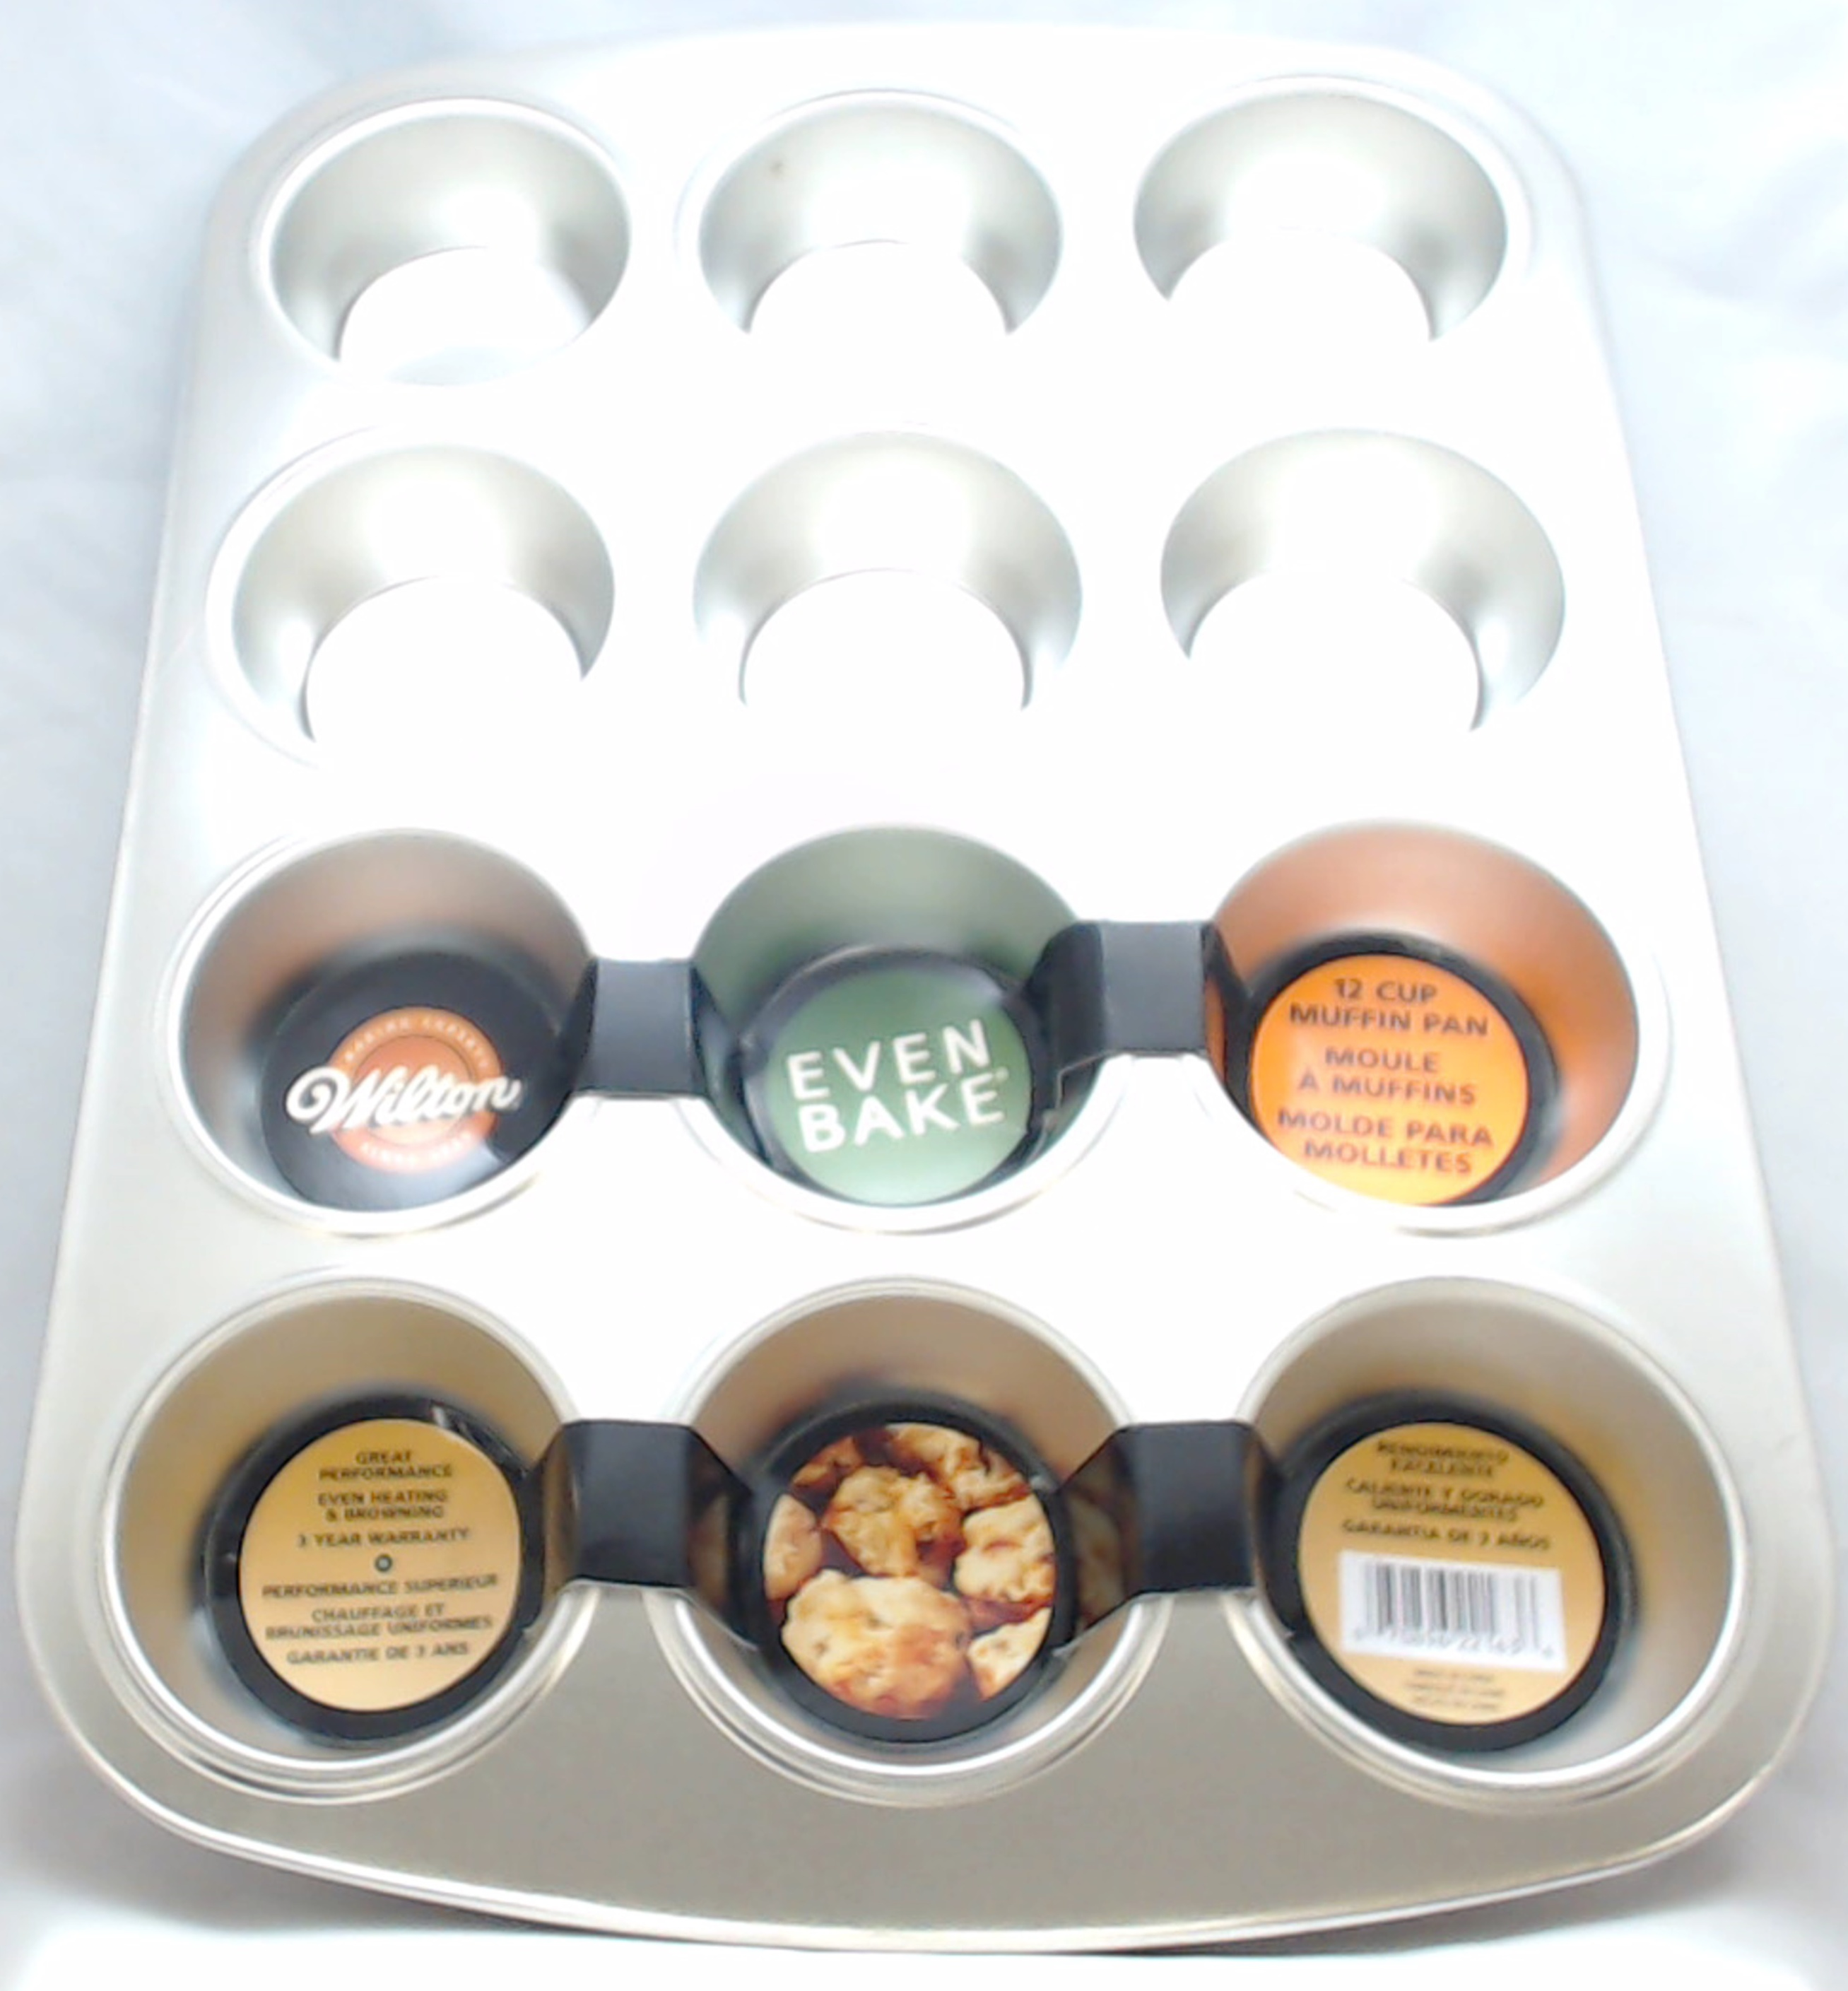 Wilton Even Bake 12 Cup Muffin Pan, 2105-2163